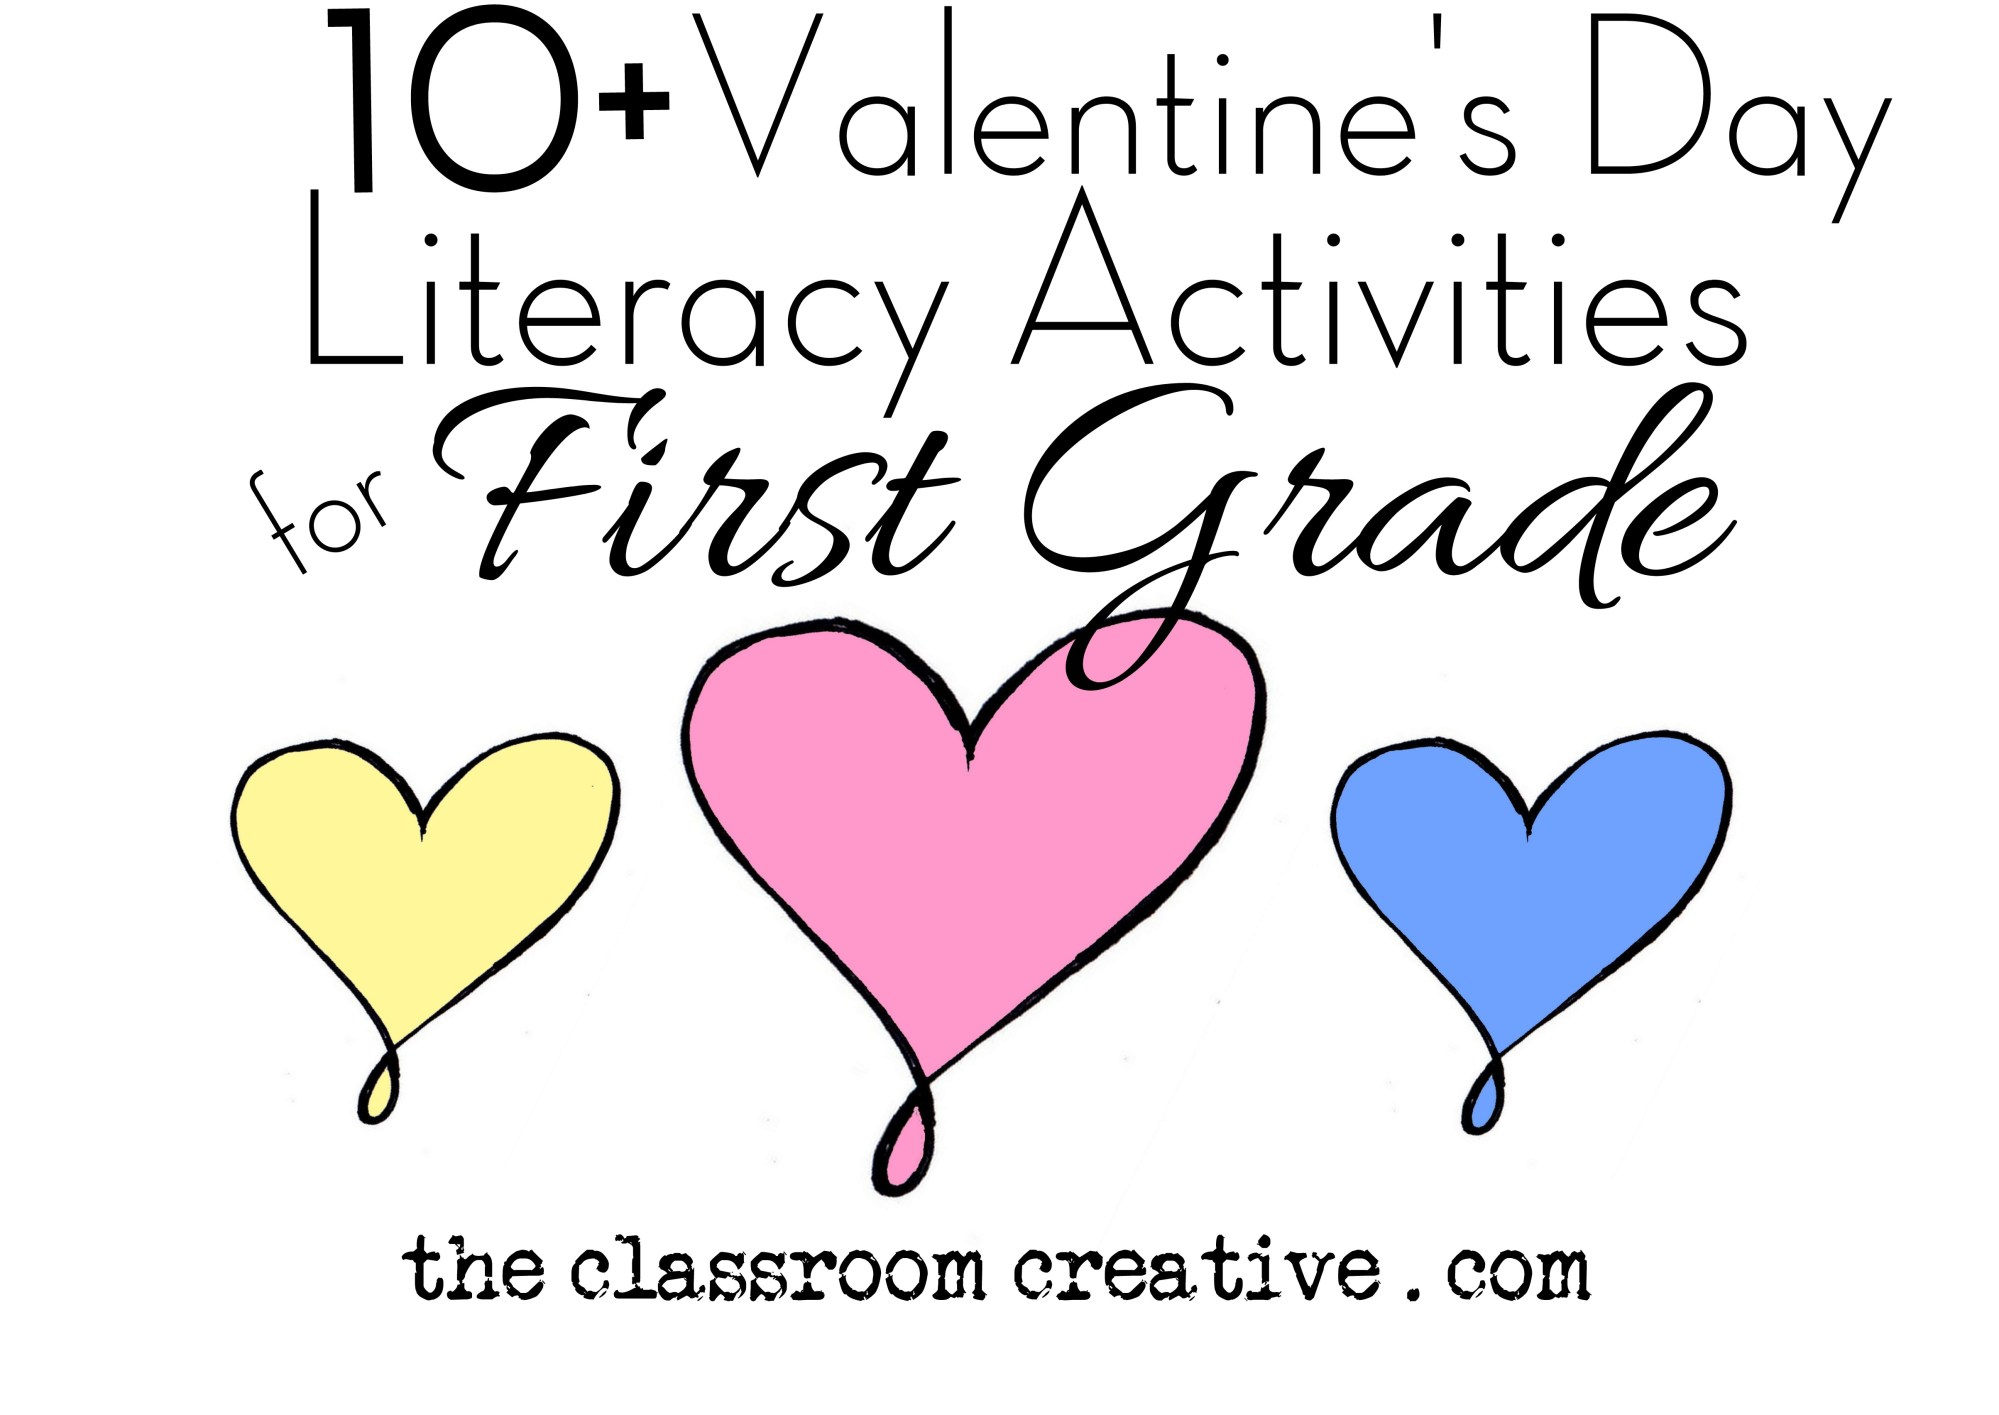 hight resolution of Valentine's Day Literacy Activities for First Grade